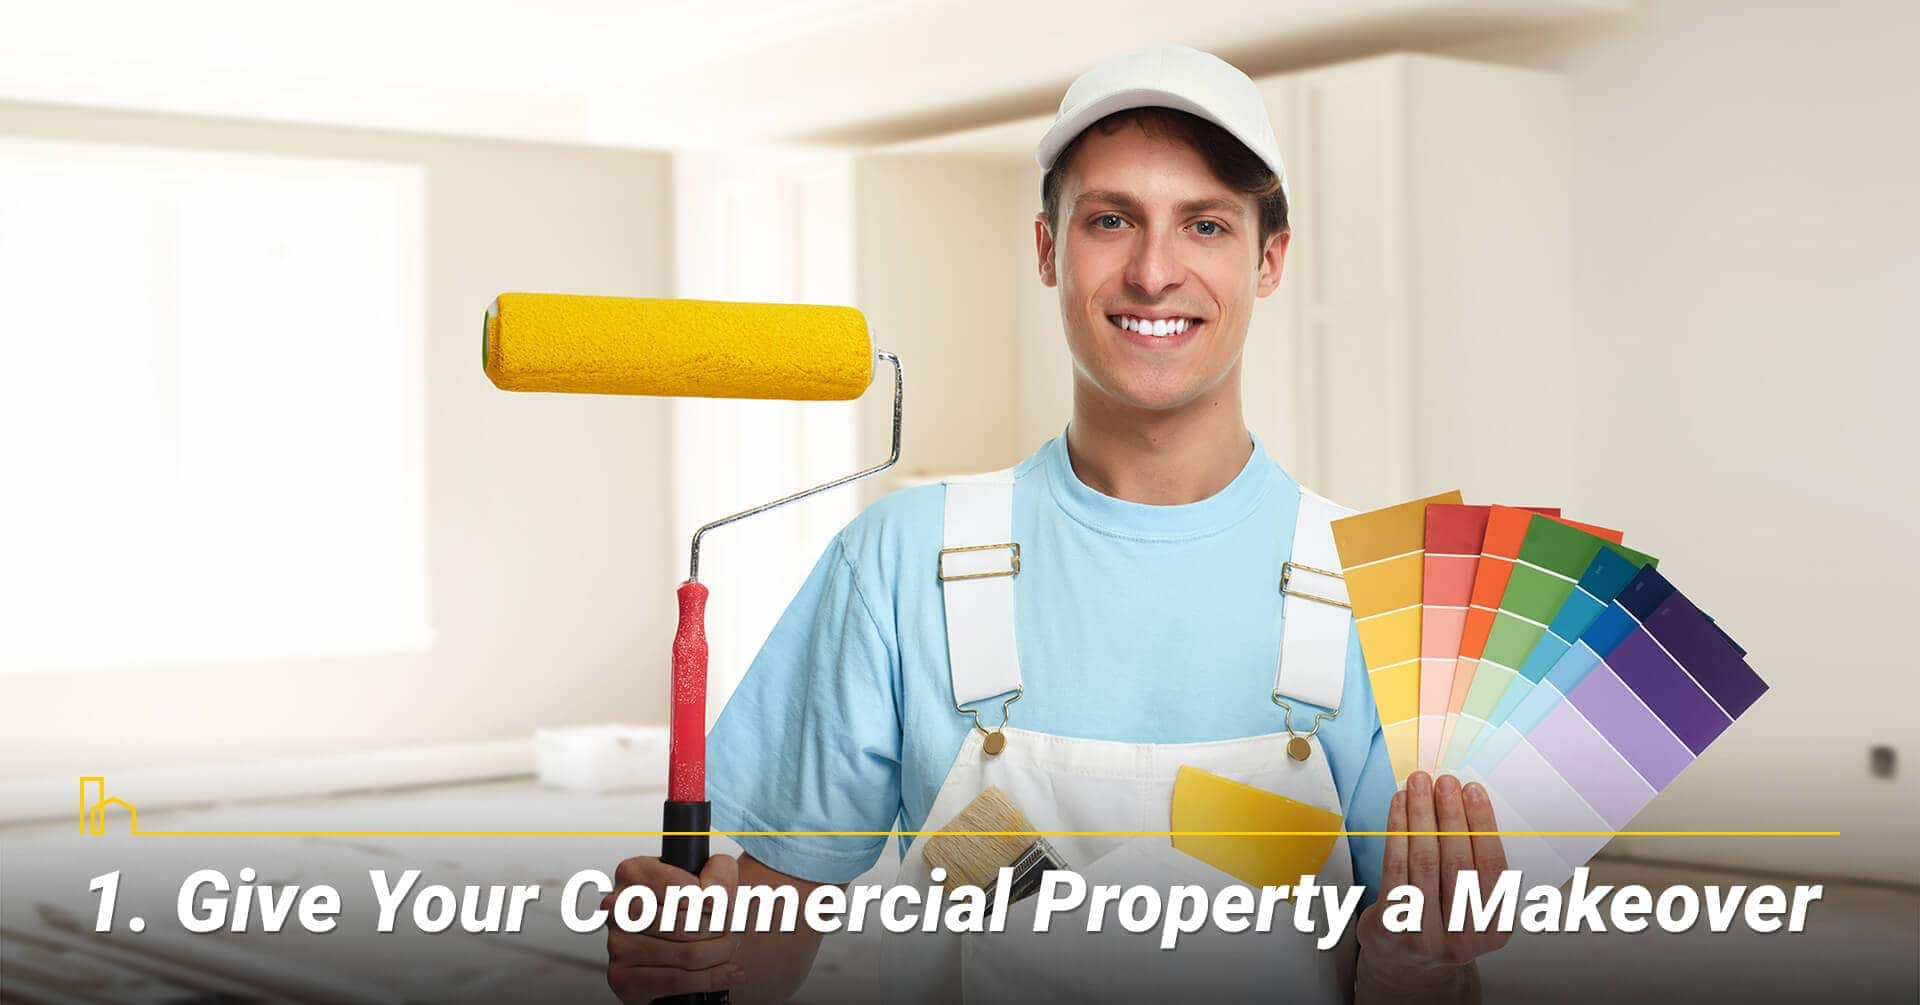 Give Your Commercial Property a Makeover